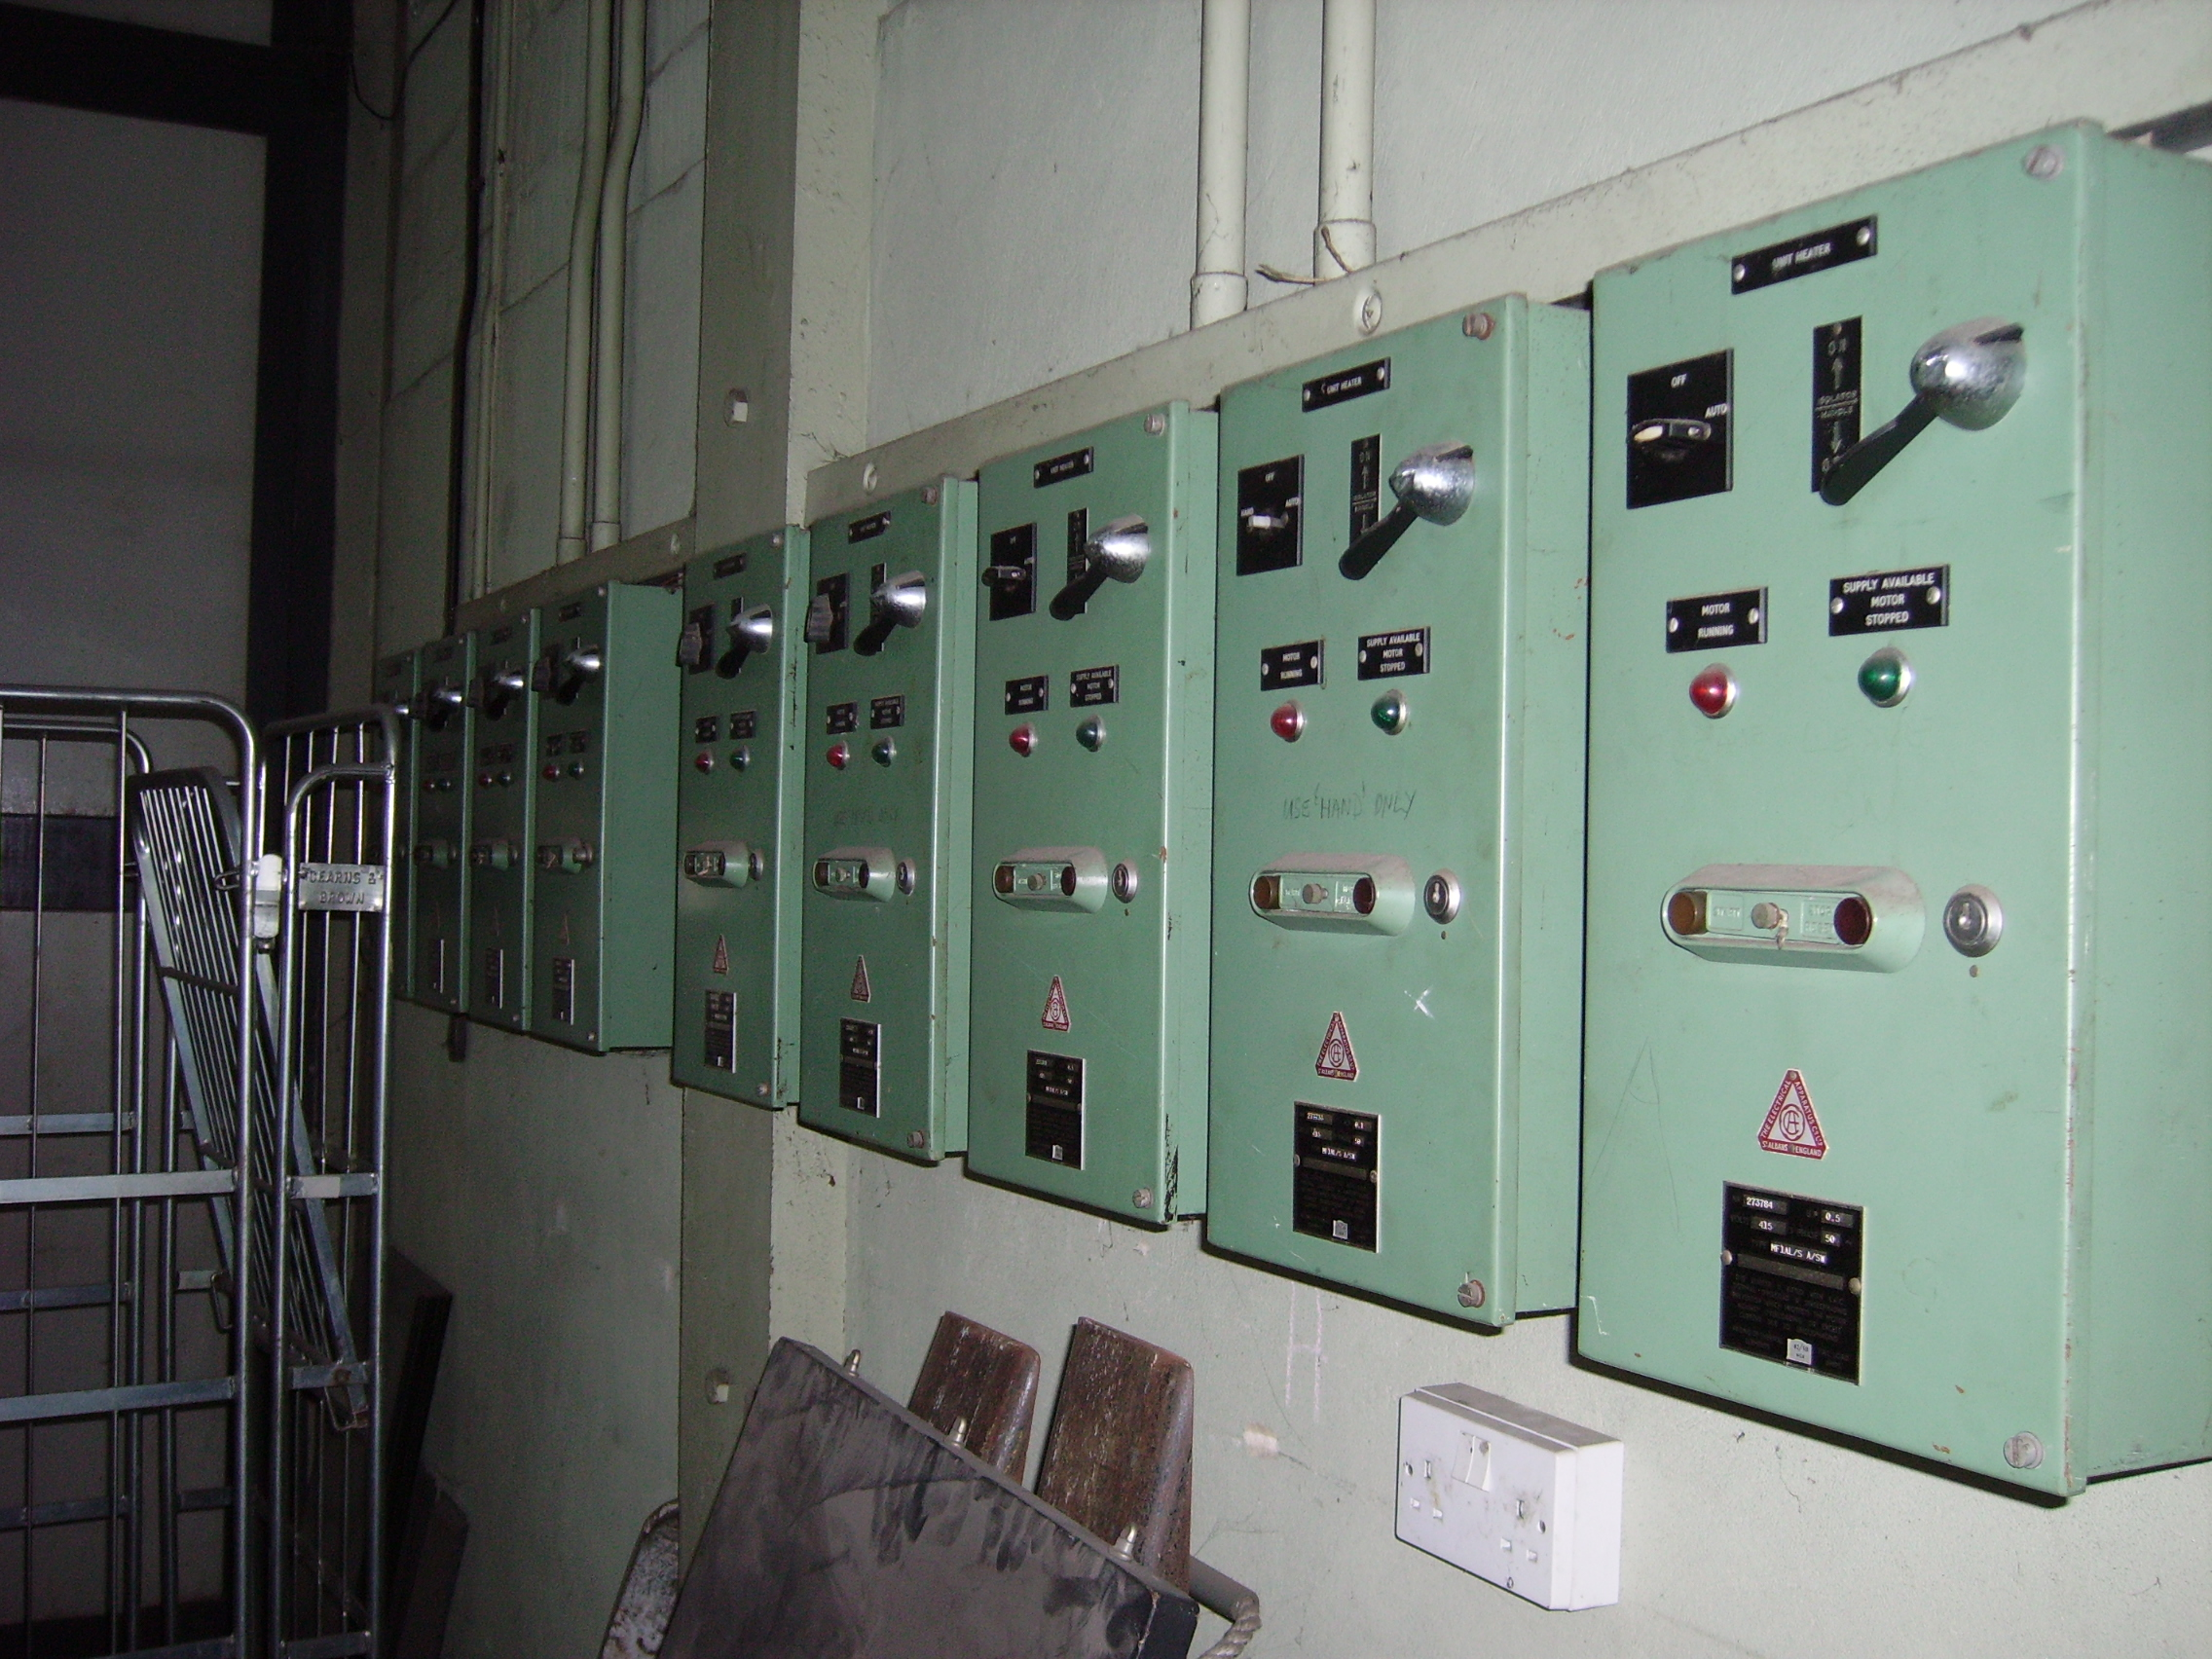 Unit heater controls in the Bilby Store